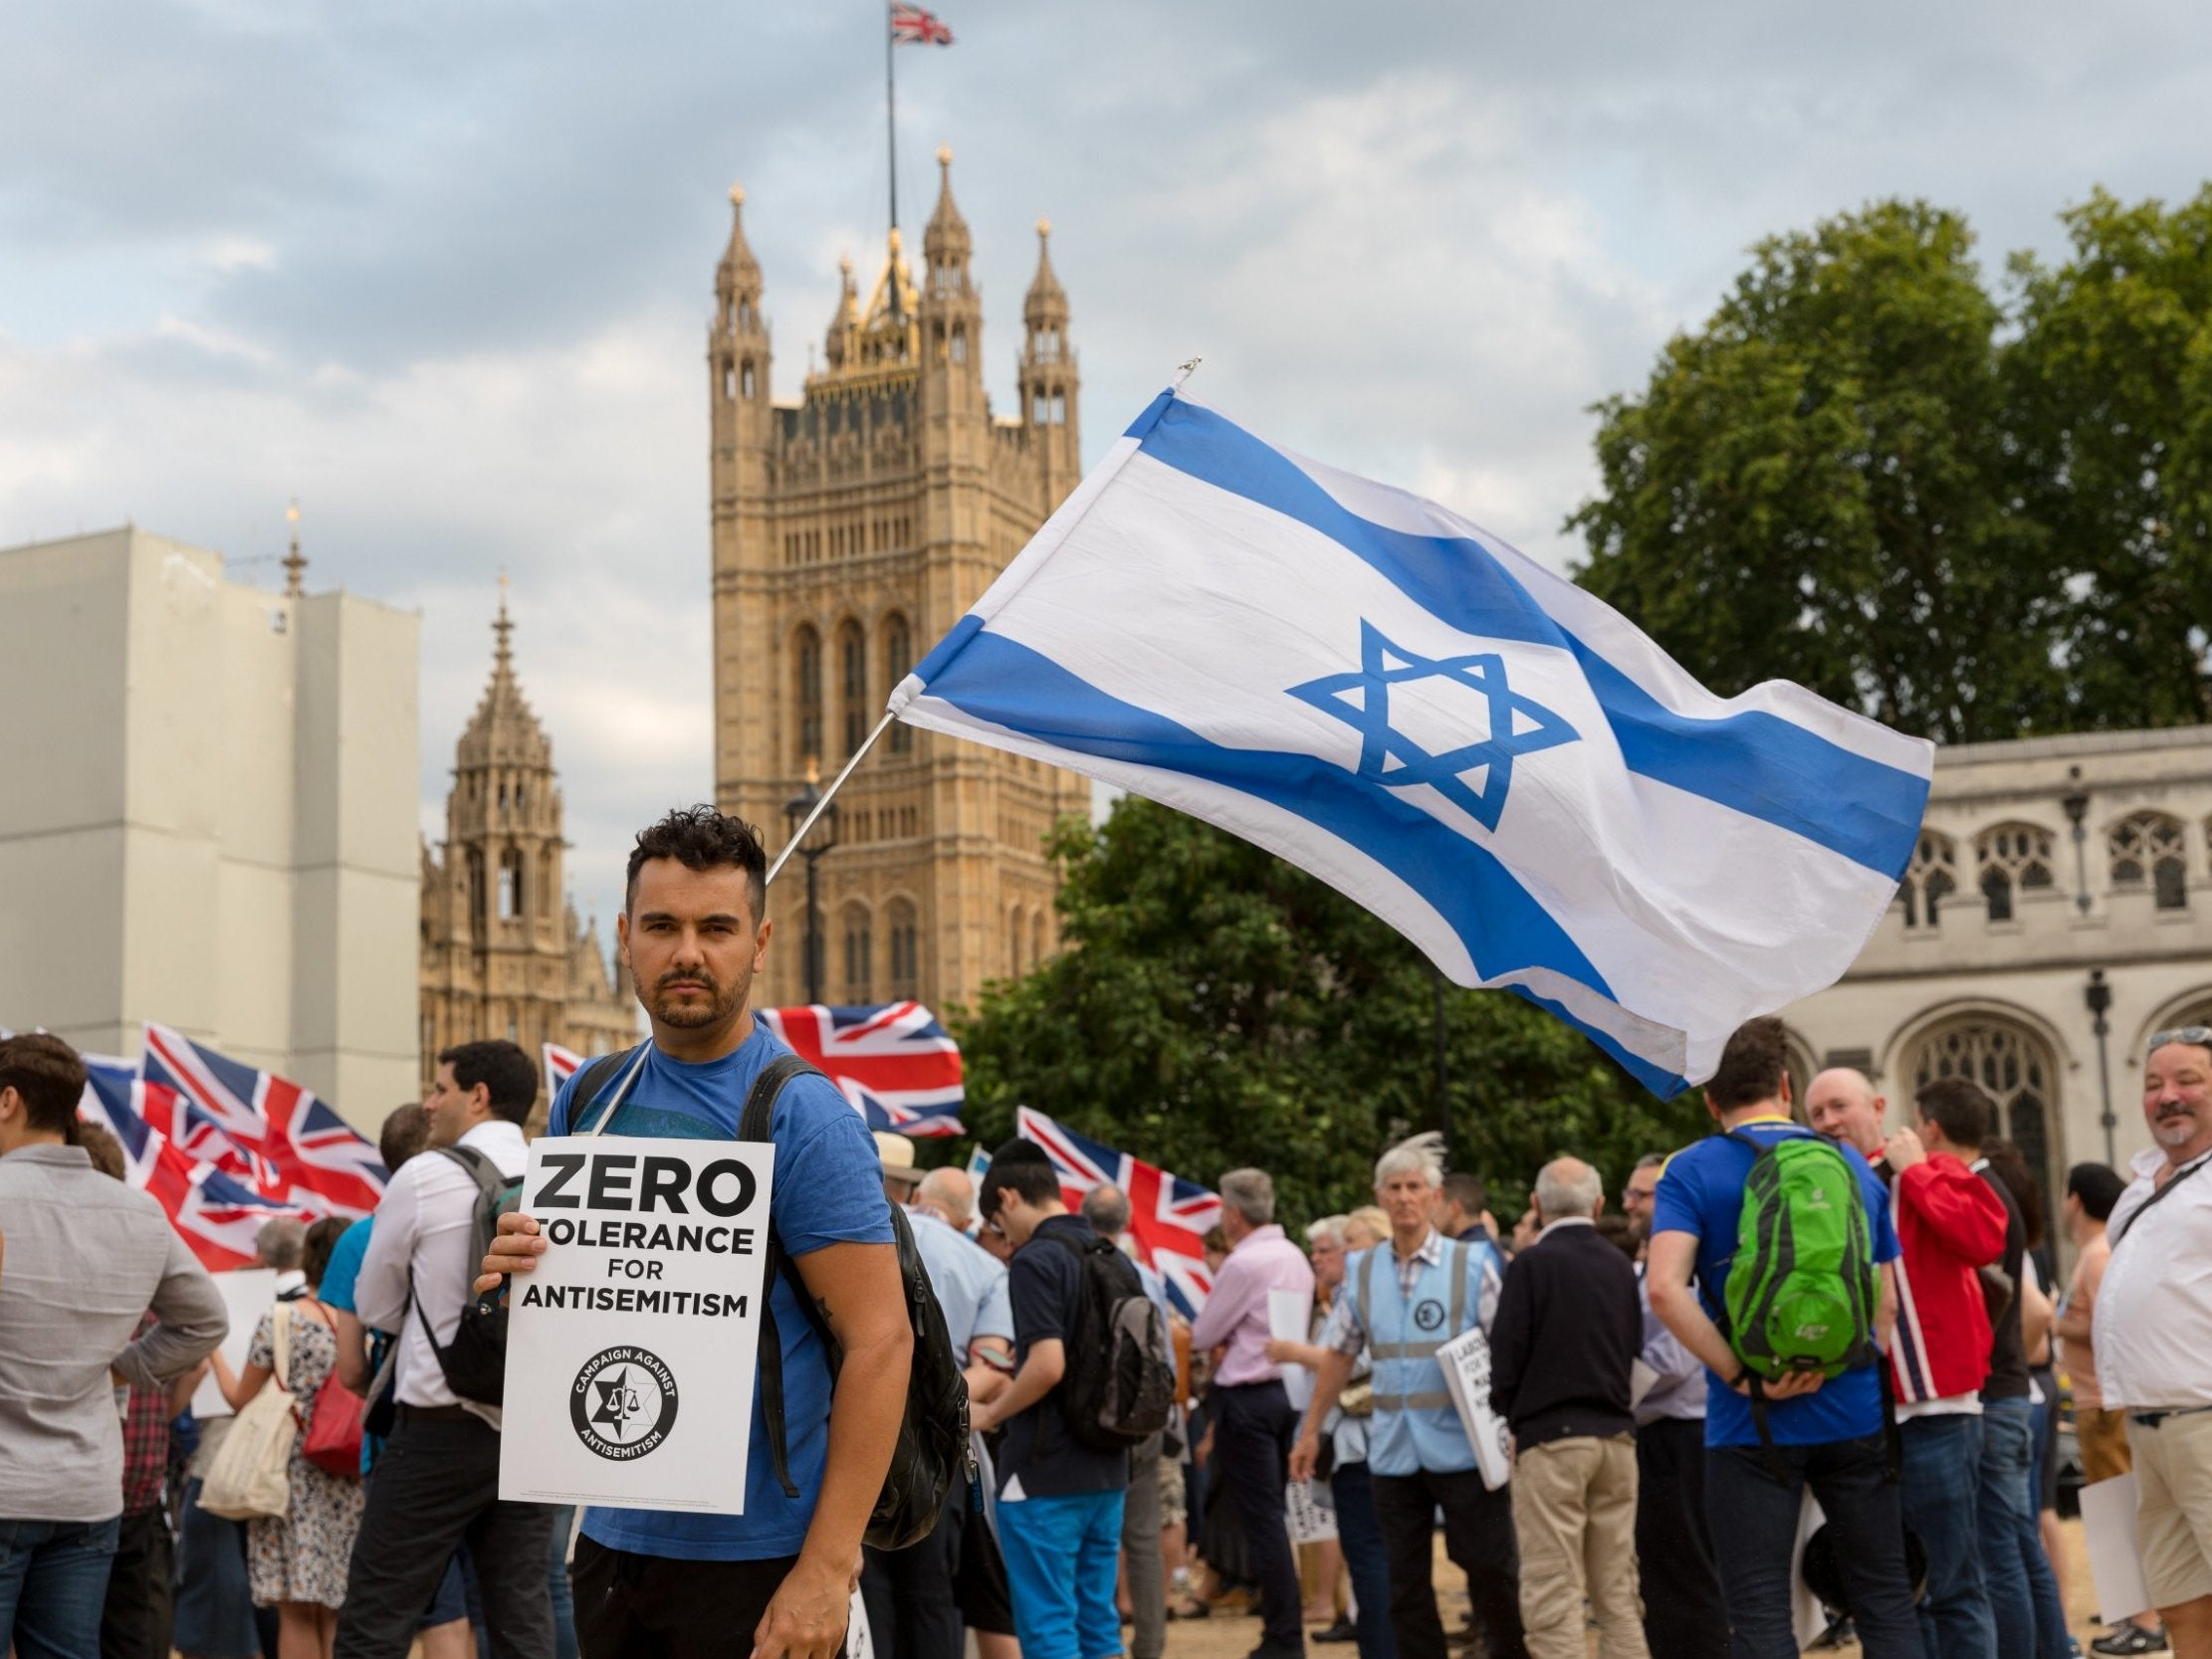 As Jews, we reject the myth that it's antisemitic to call Israel racist